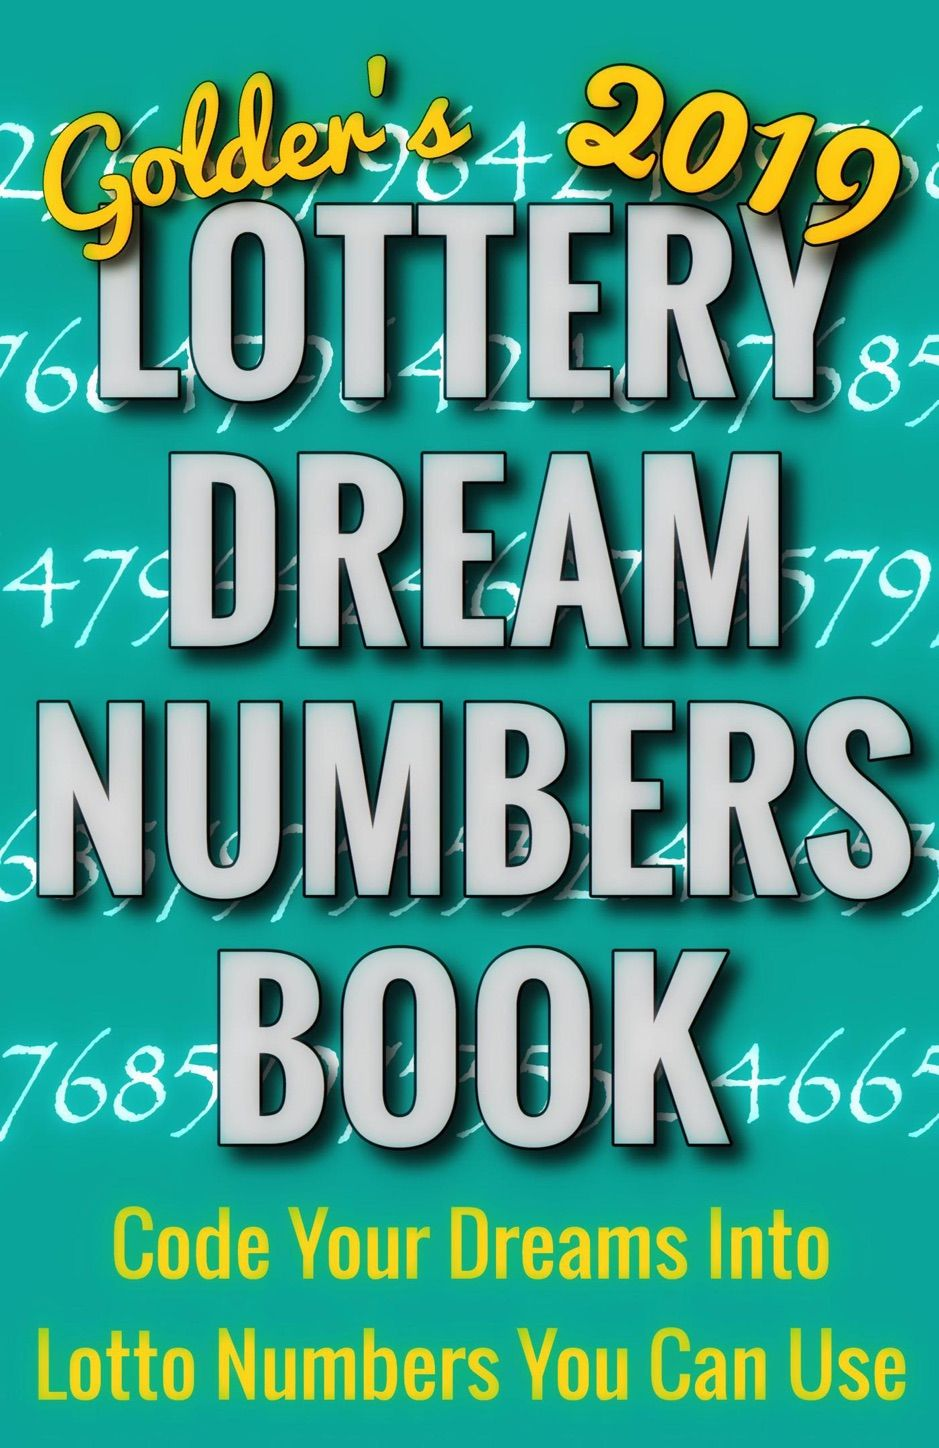 A Zgolder S 2019 Lottery Dream Numbers Book Code Your Dreams Into Lotto Numbers Y Sponsored Numbers Dream Lotto Numbers Lottery Book Lottery Numbers